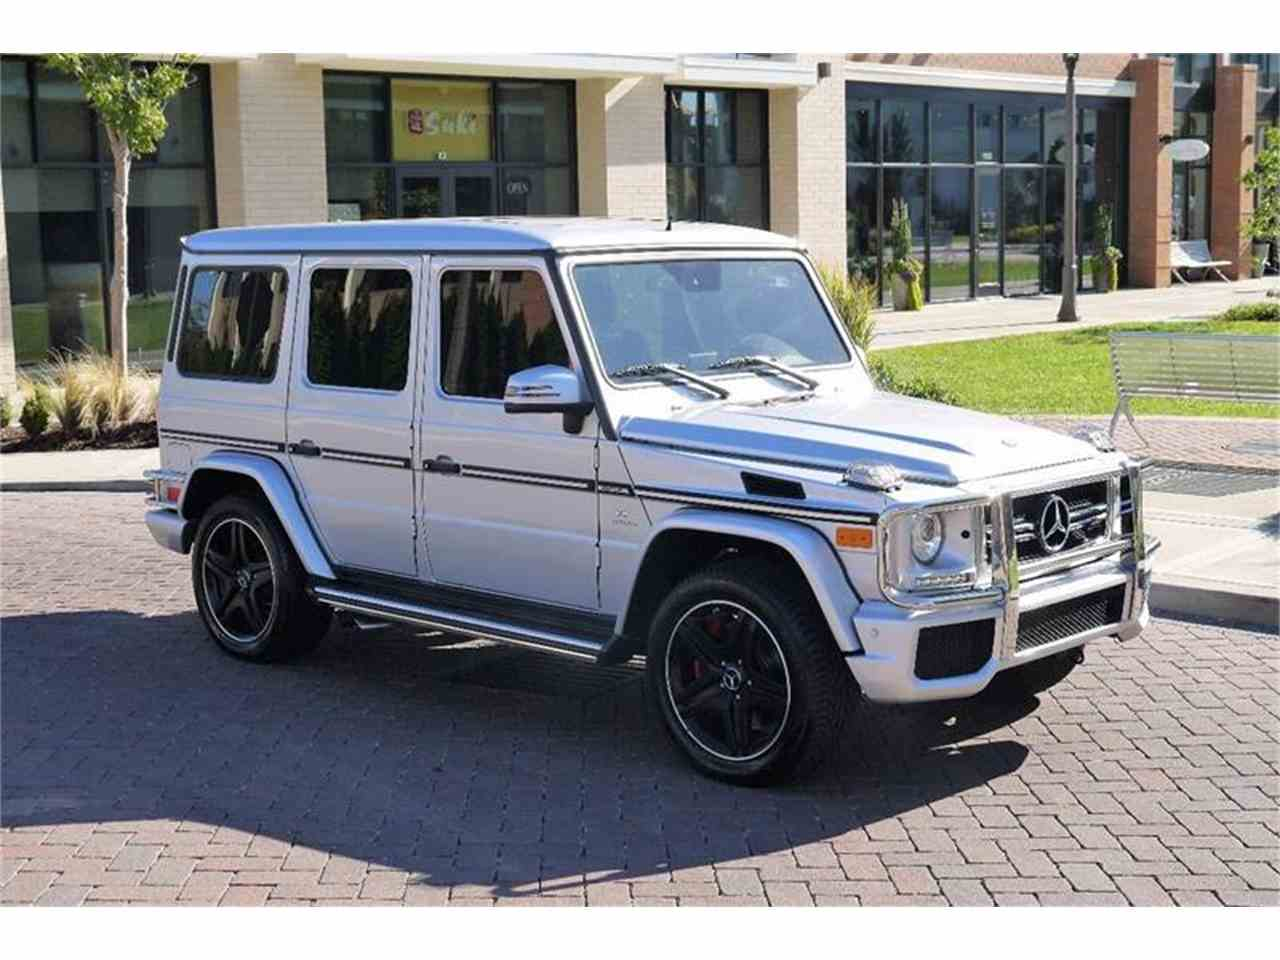 Large Picture of '13 Mercedes-Benz G-Class located in Brentwood Tennessee Auction Vehicle Offered by Arde Motorcars - M2NF